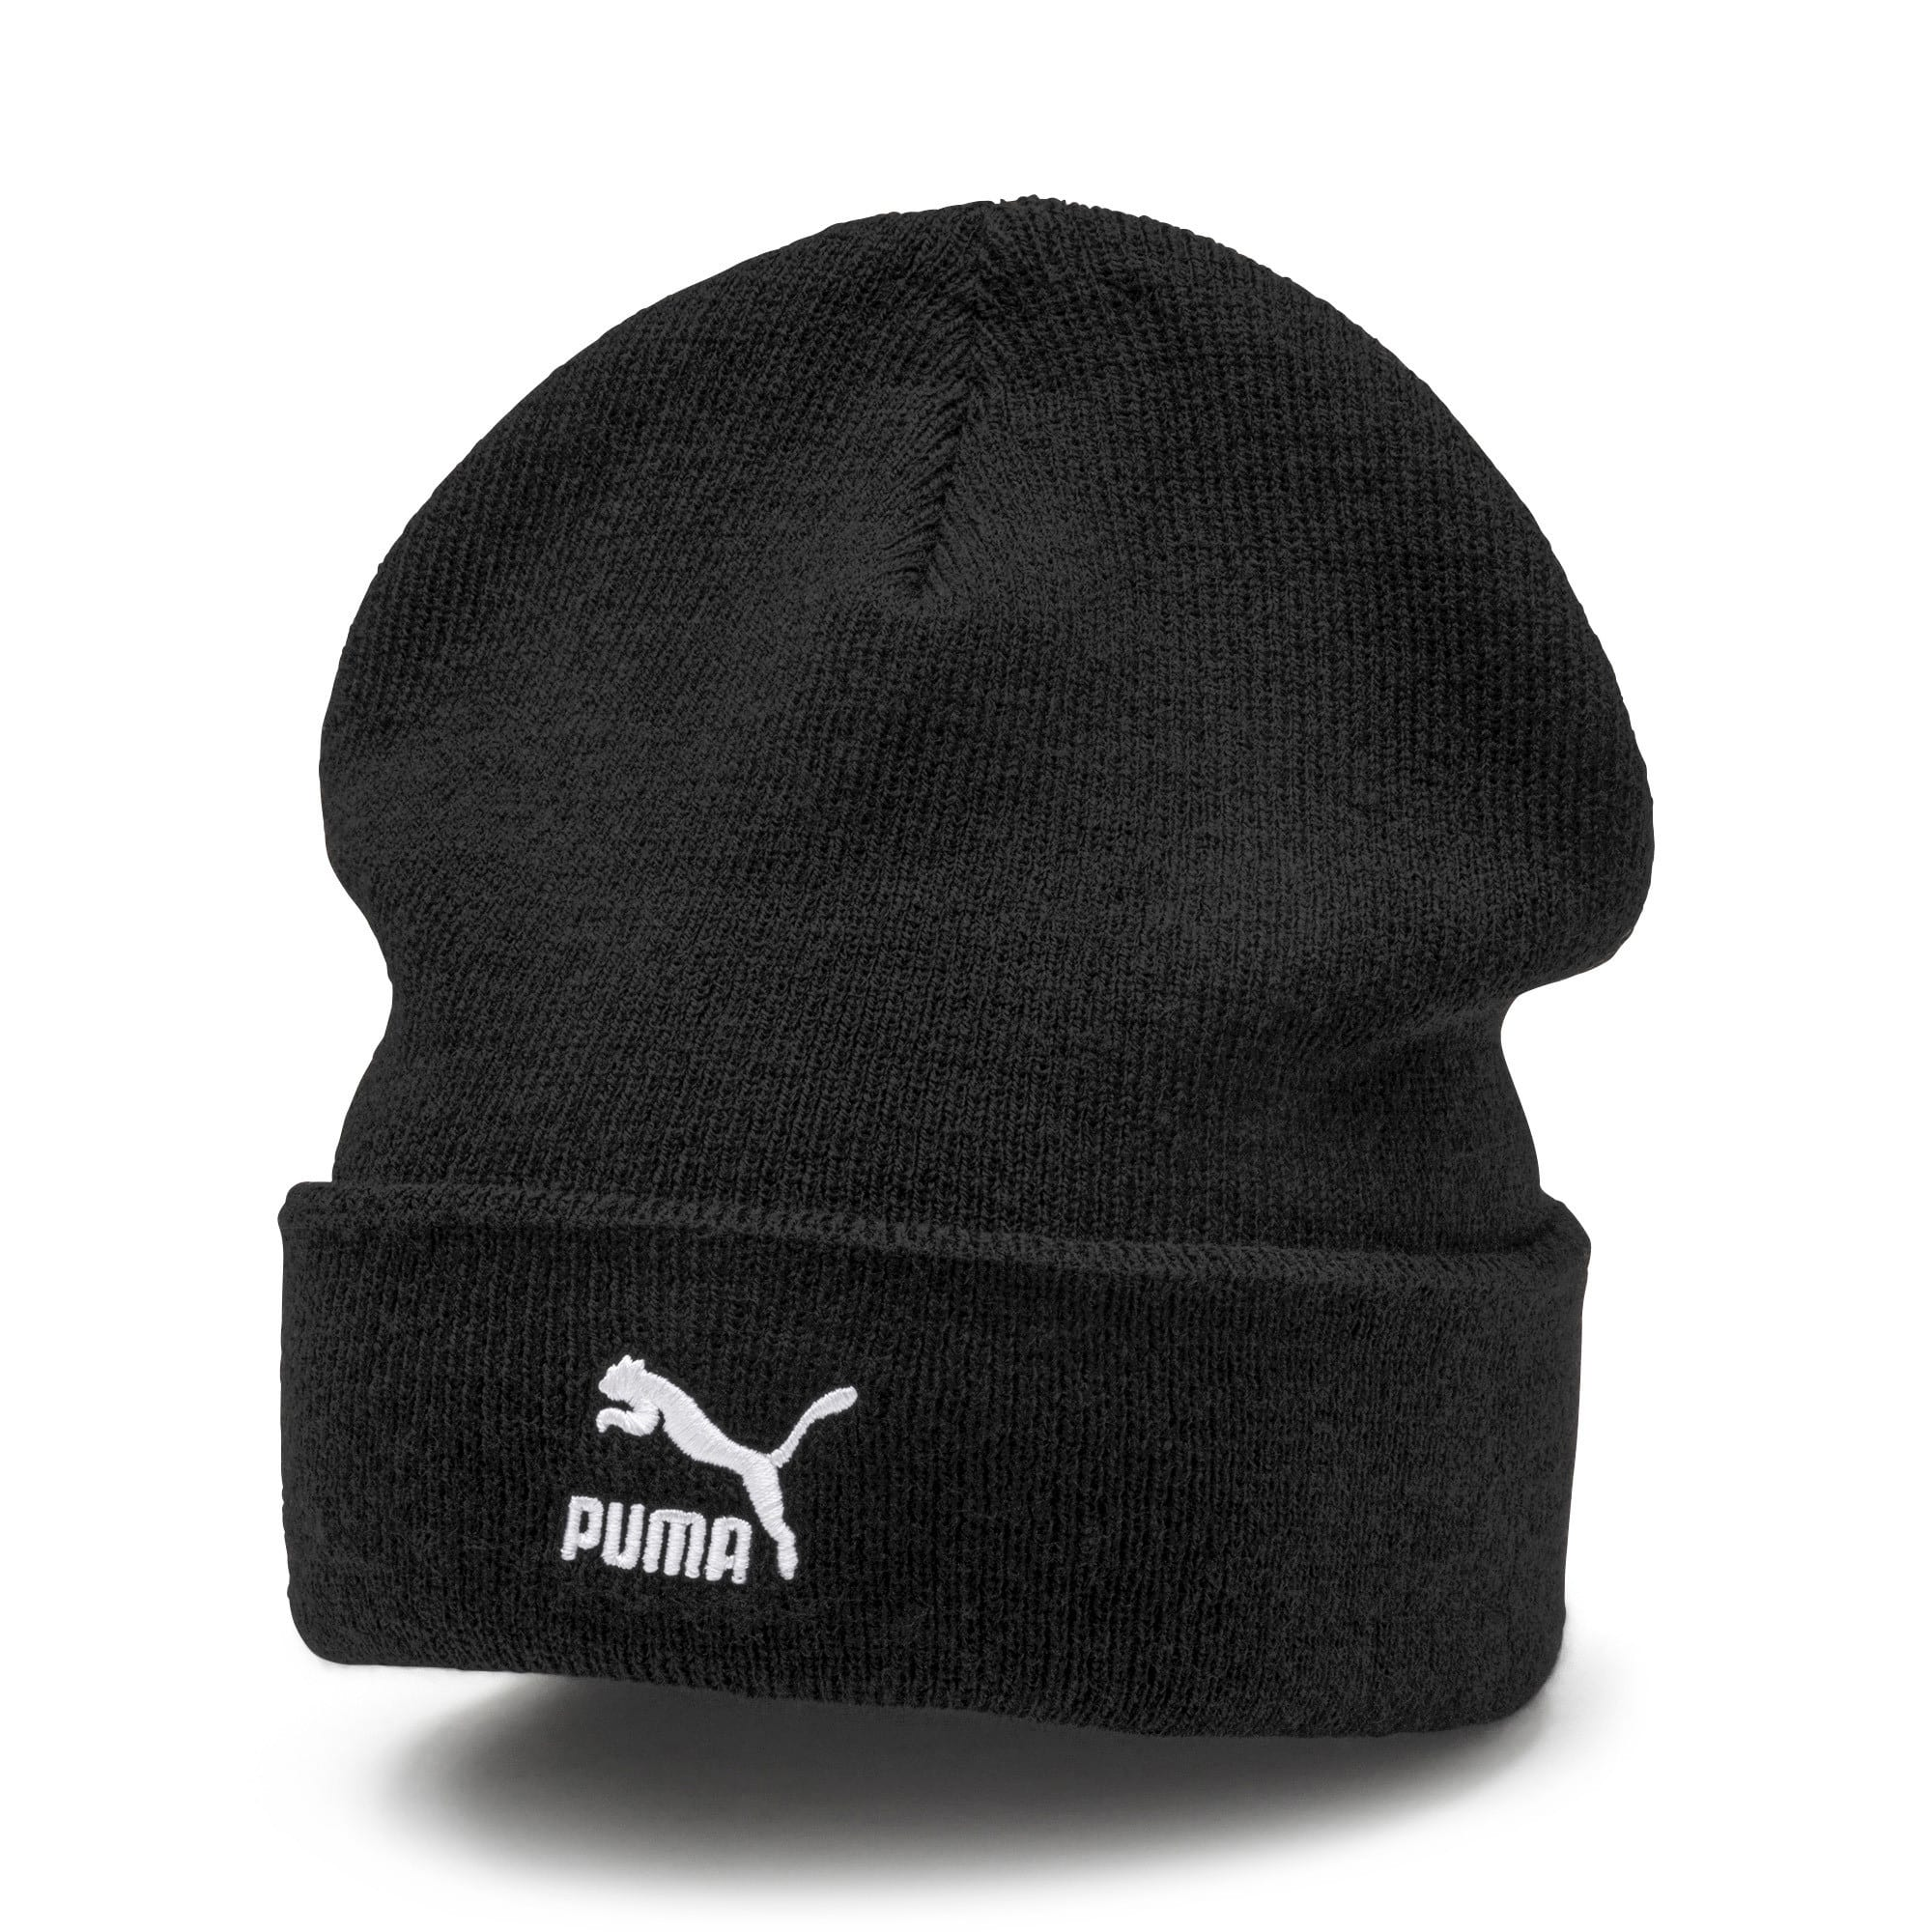 Archive Mid Fit Beanie, Puma Black, large